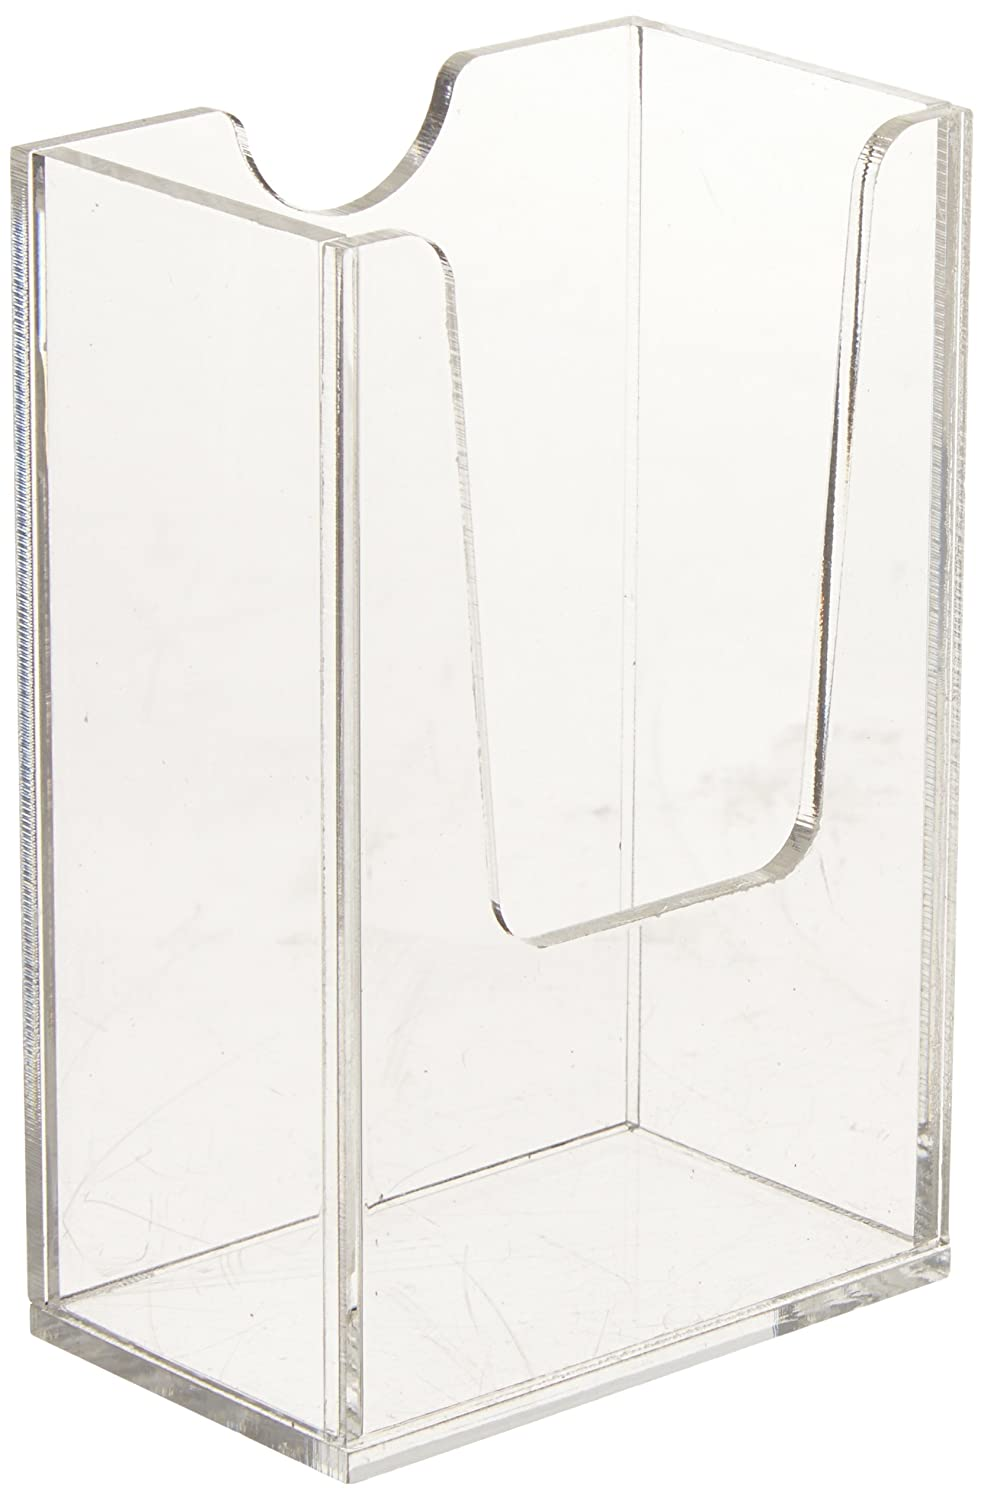 Amazon.com : Source One Vertical Business Card Holder, Clear ...